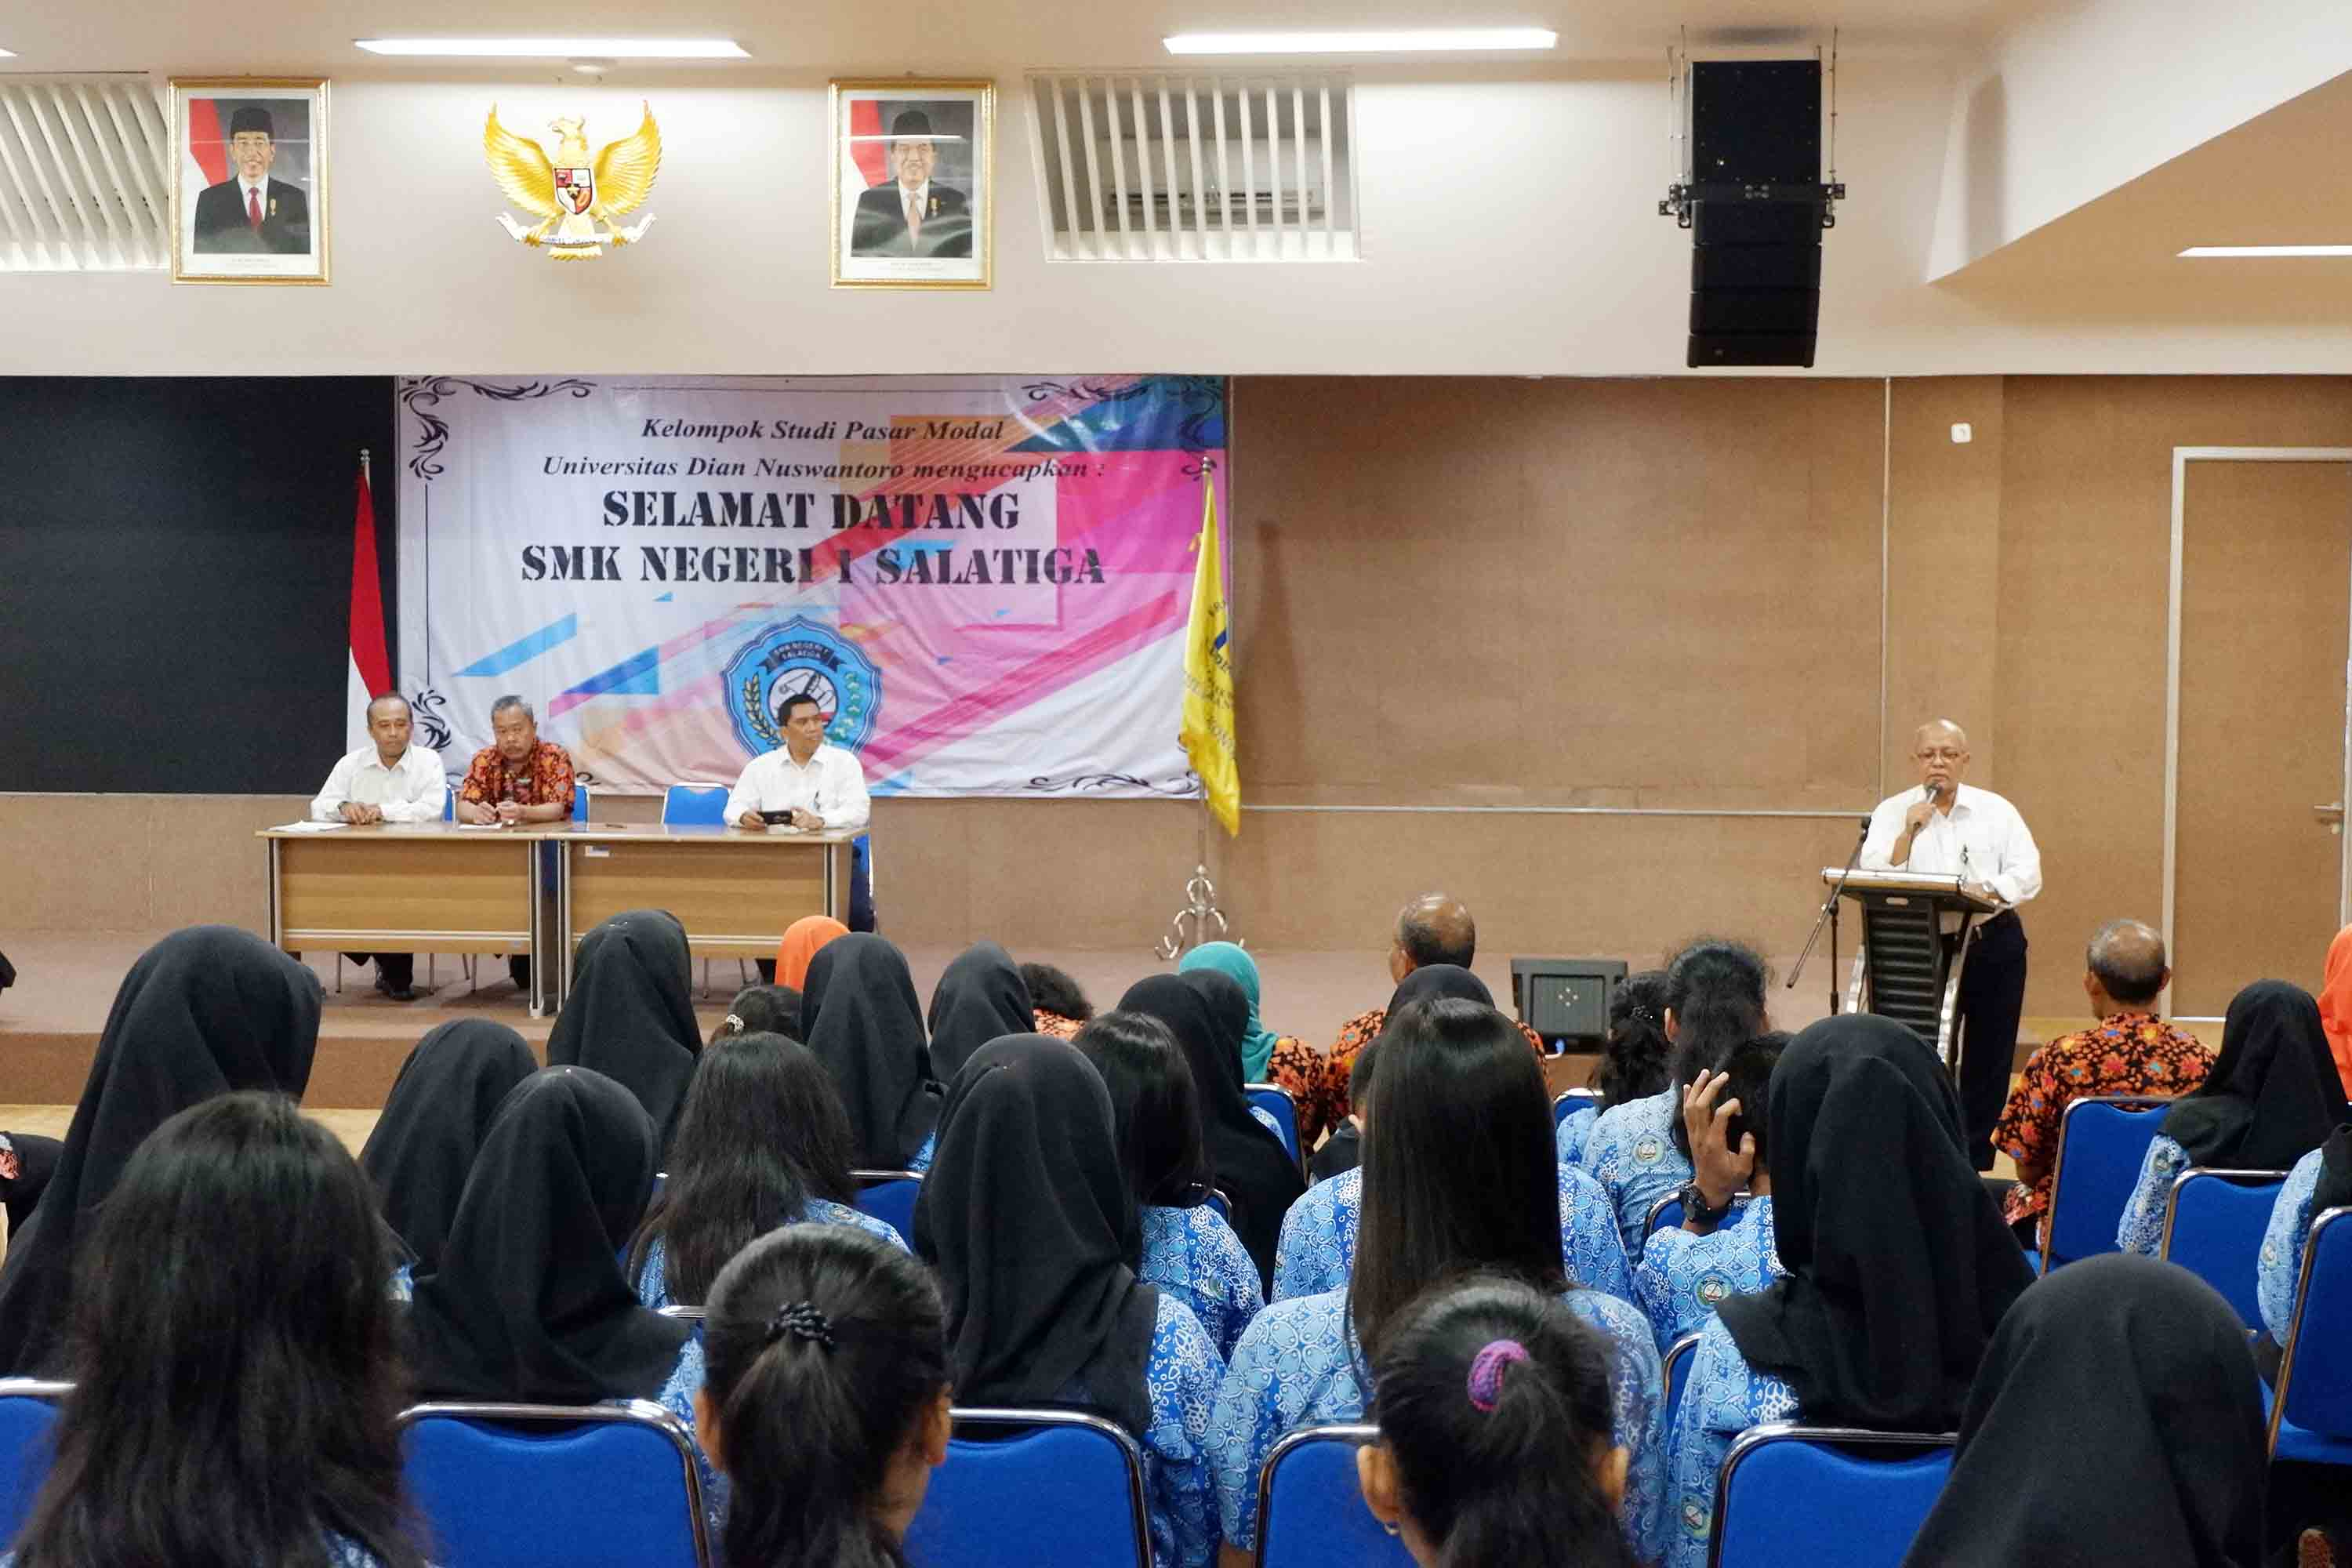 1 SALATIGA VOCATIONAL SCHOOL WANTS TO GET CLOSER TO FEB UDINUS